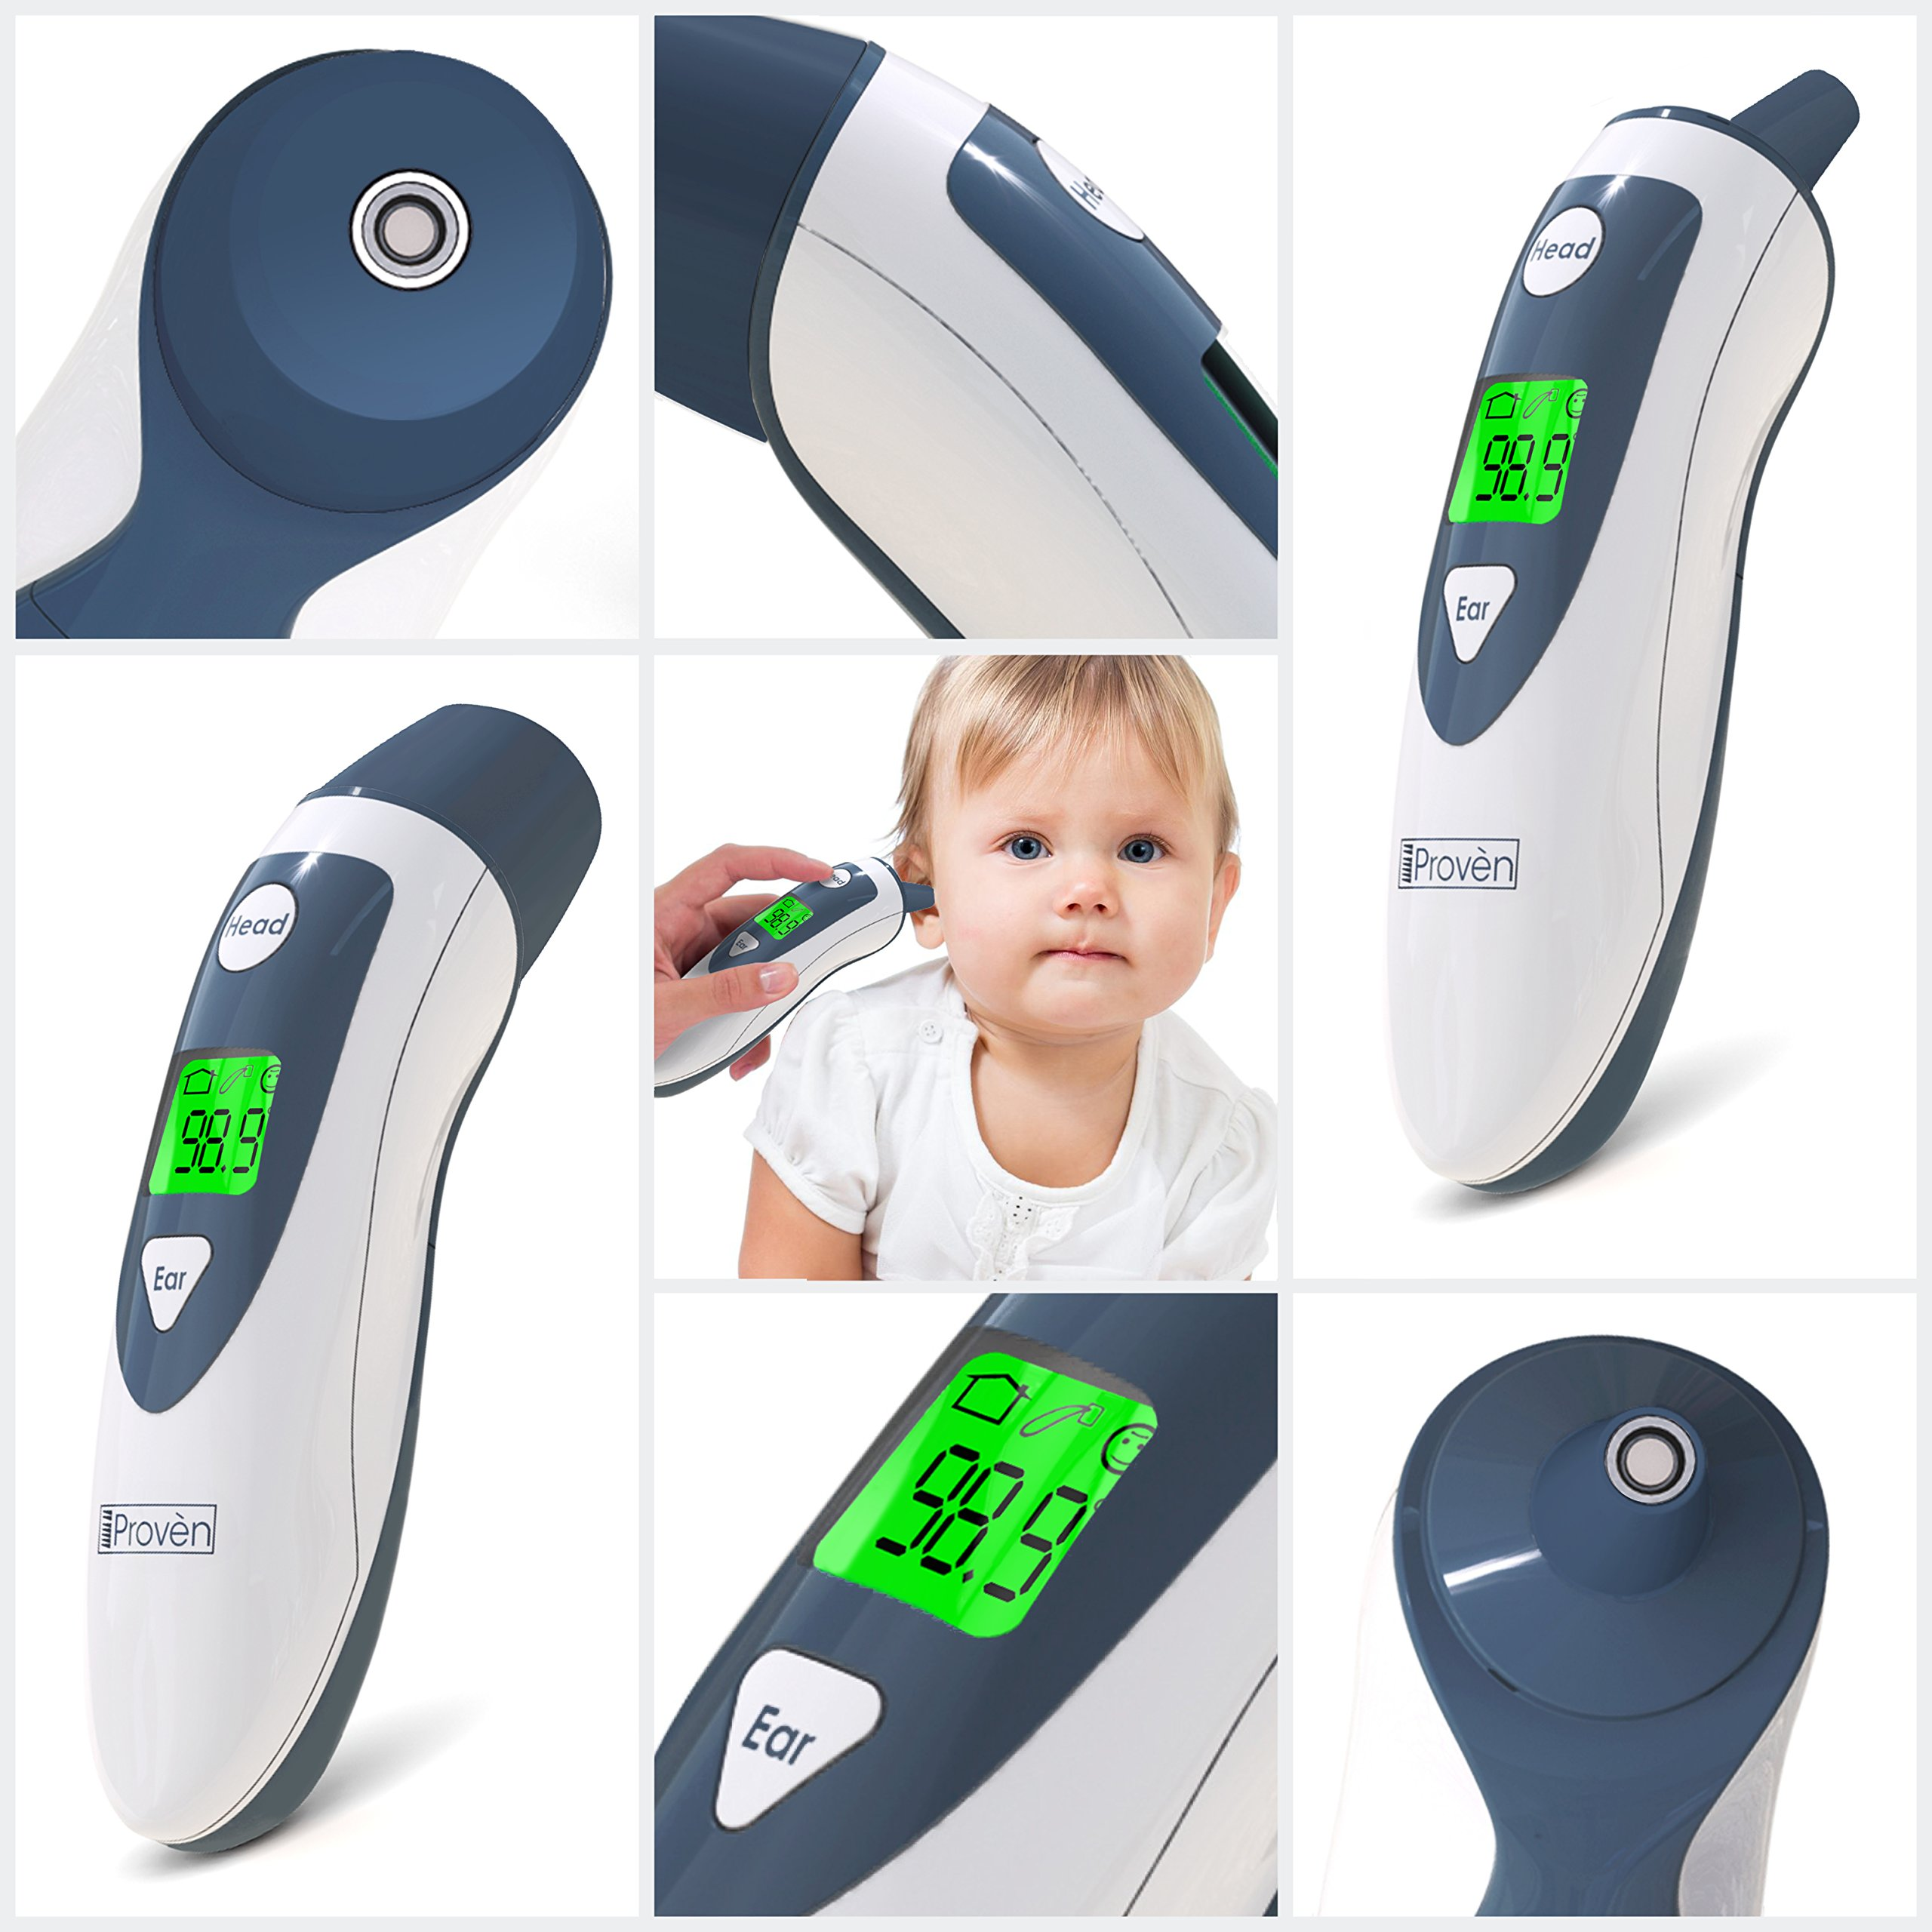 Baby Forehead Thermometer with Ear Function- iProven DMT489 Gray Cap - FDA and CE Approved - Clinical Accuracy Suitable for Baby, Infant, Toddler and Adults by iProvèn (Image #7)